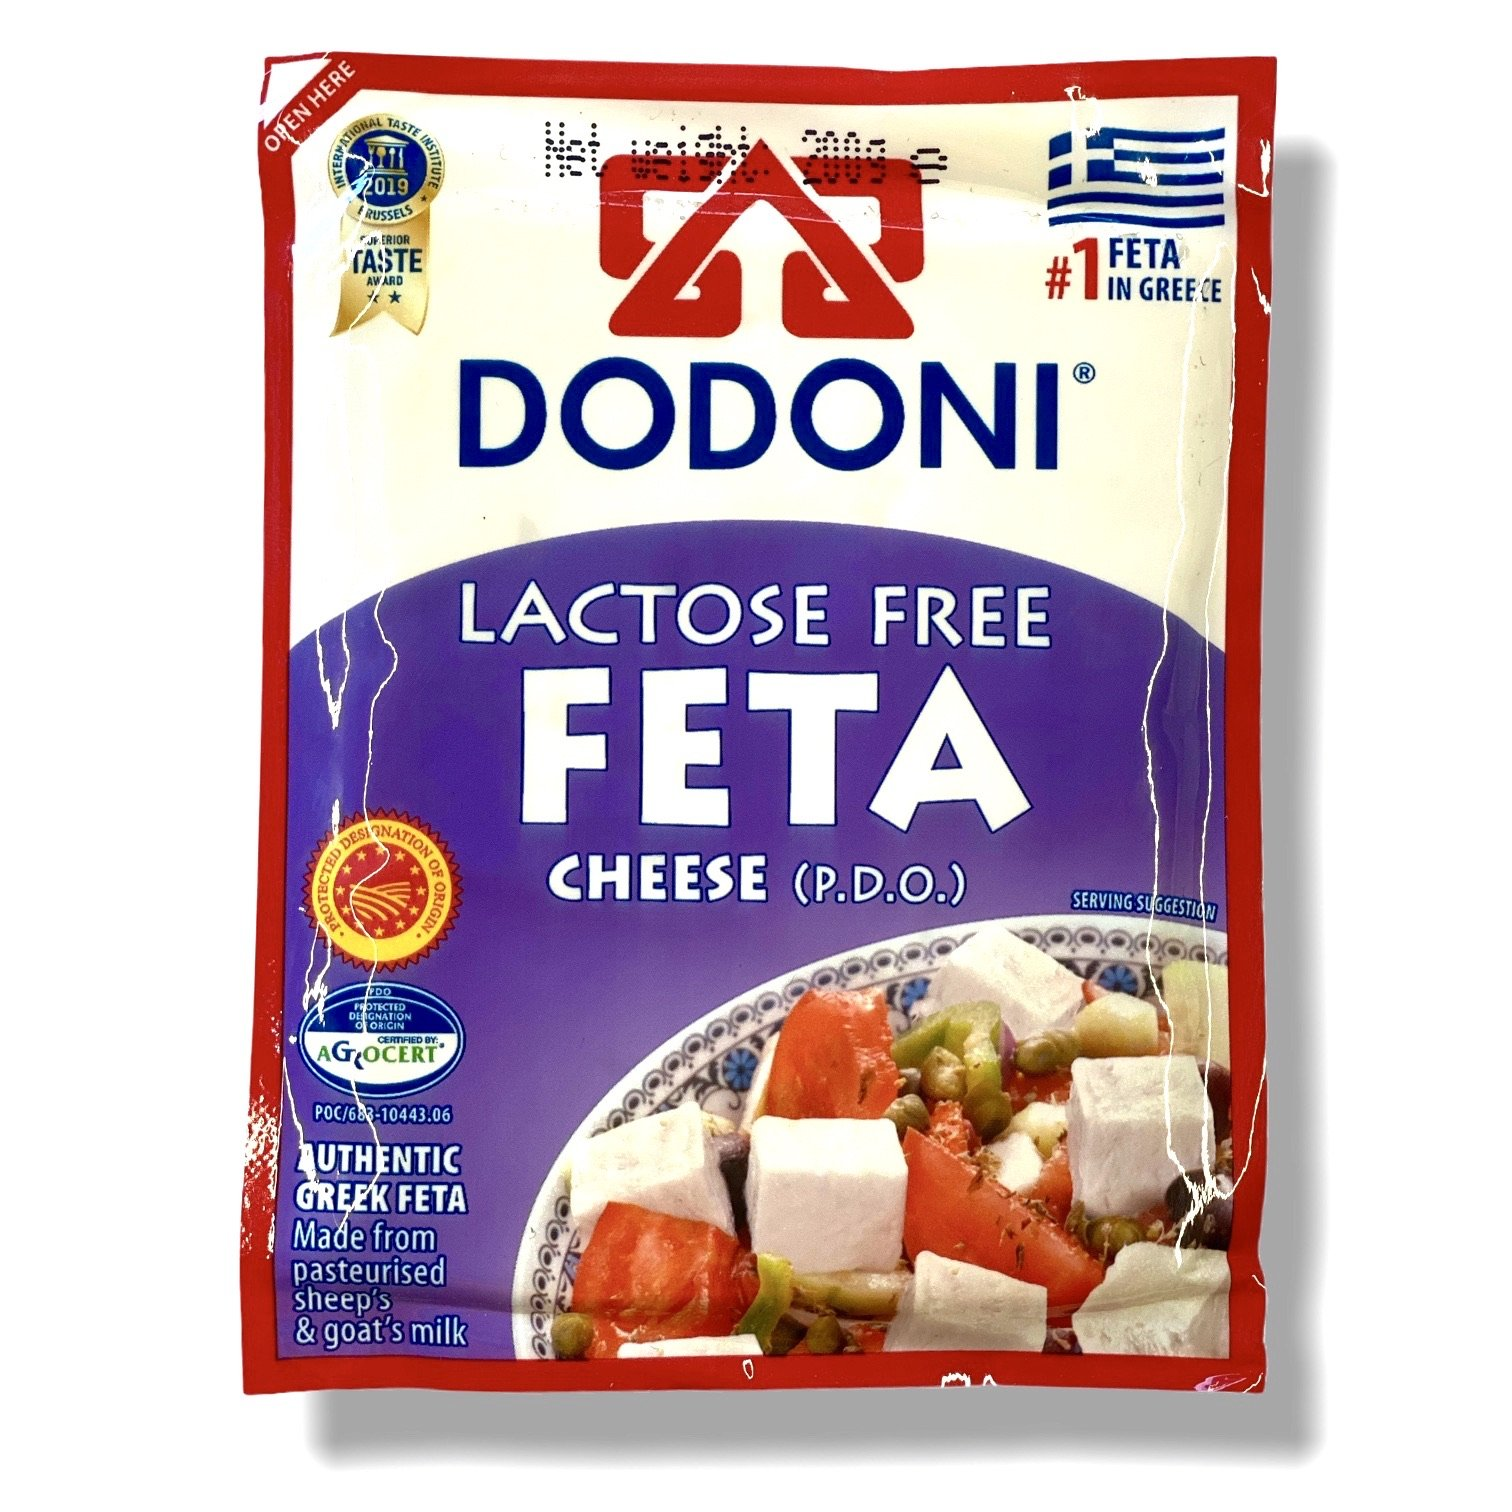 Cheese - Feta Cheese Lactose Free (P.D.O.) Authentic Greek Cheese by Dodoni - 200g